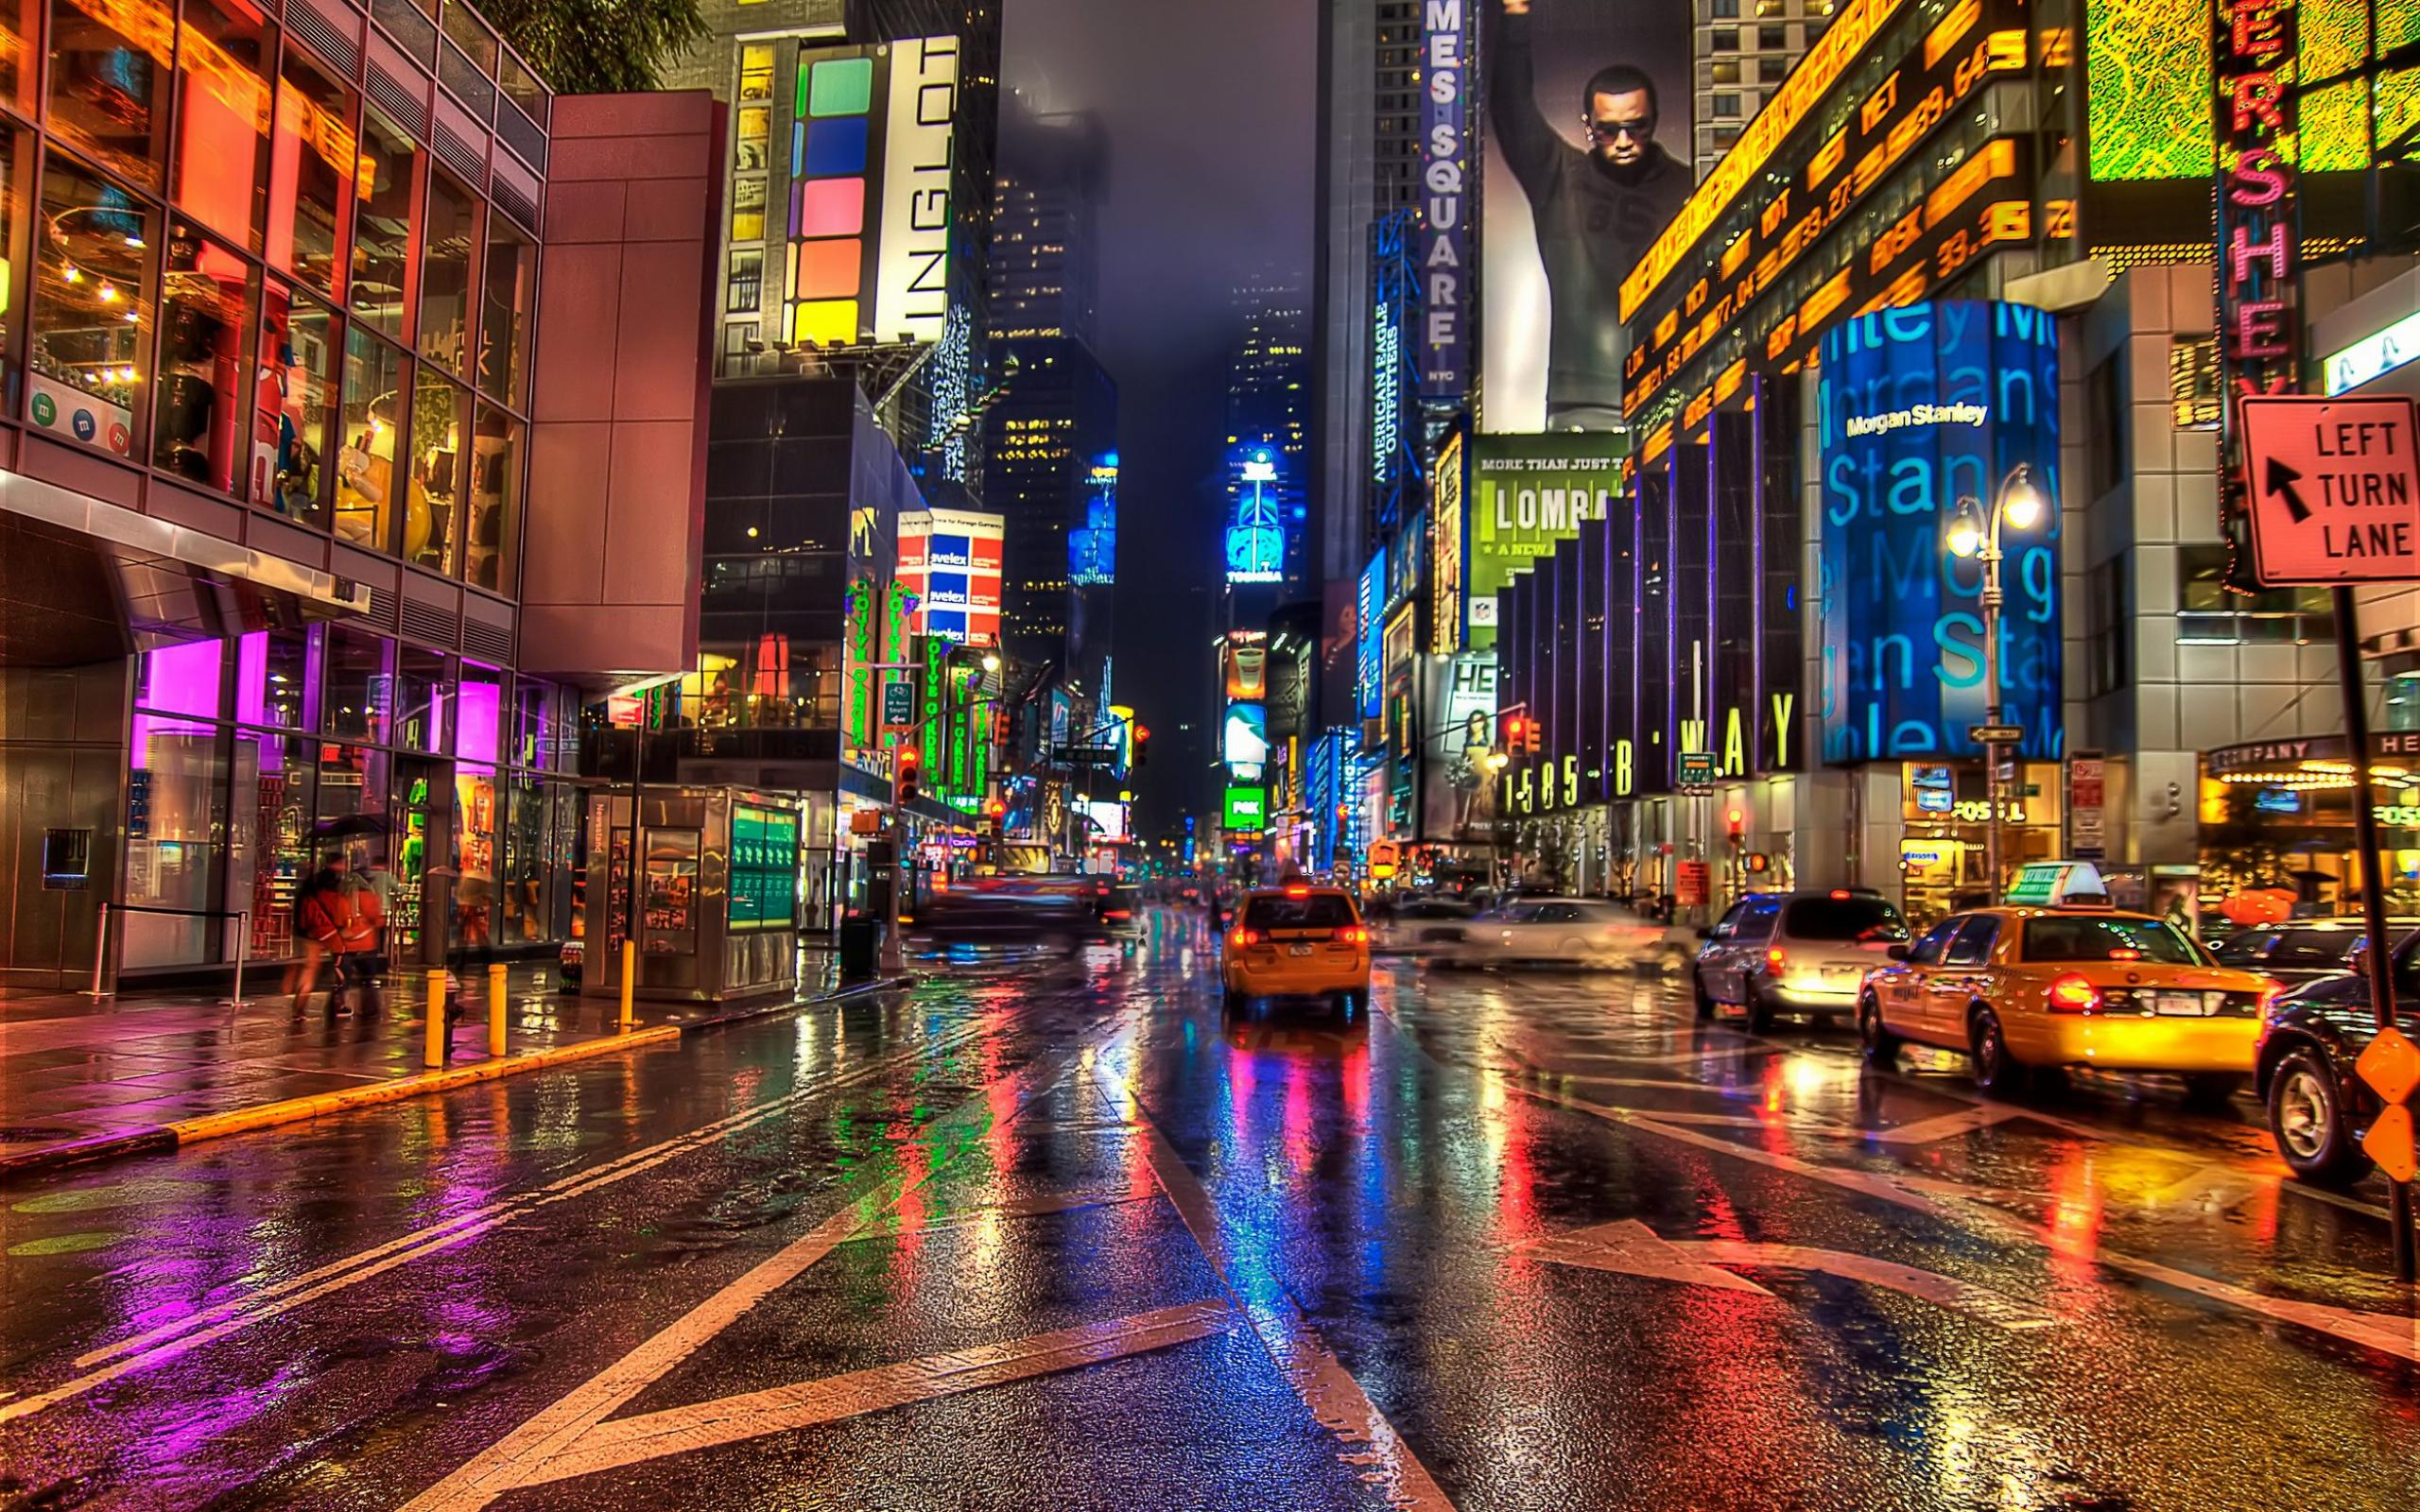 Nyc Wallpaper: Remarkable New York City Street Night Hd Wallpaper 2560x1600px